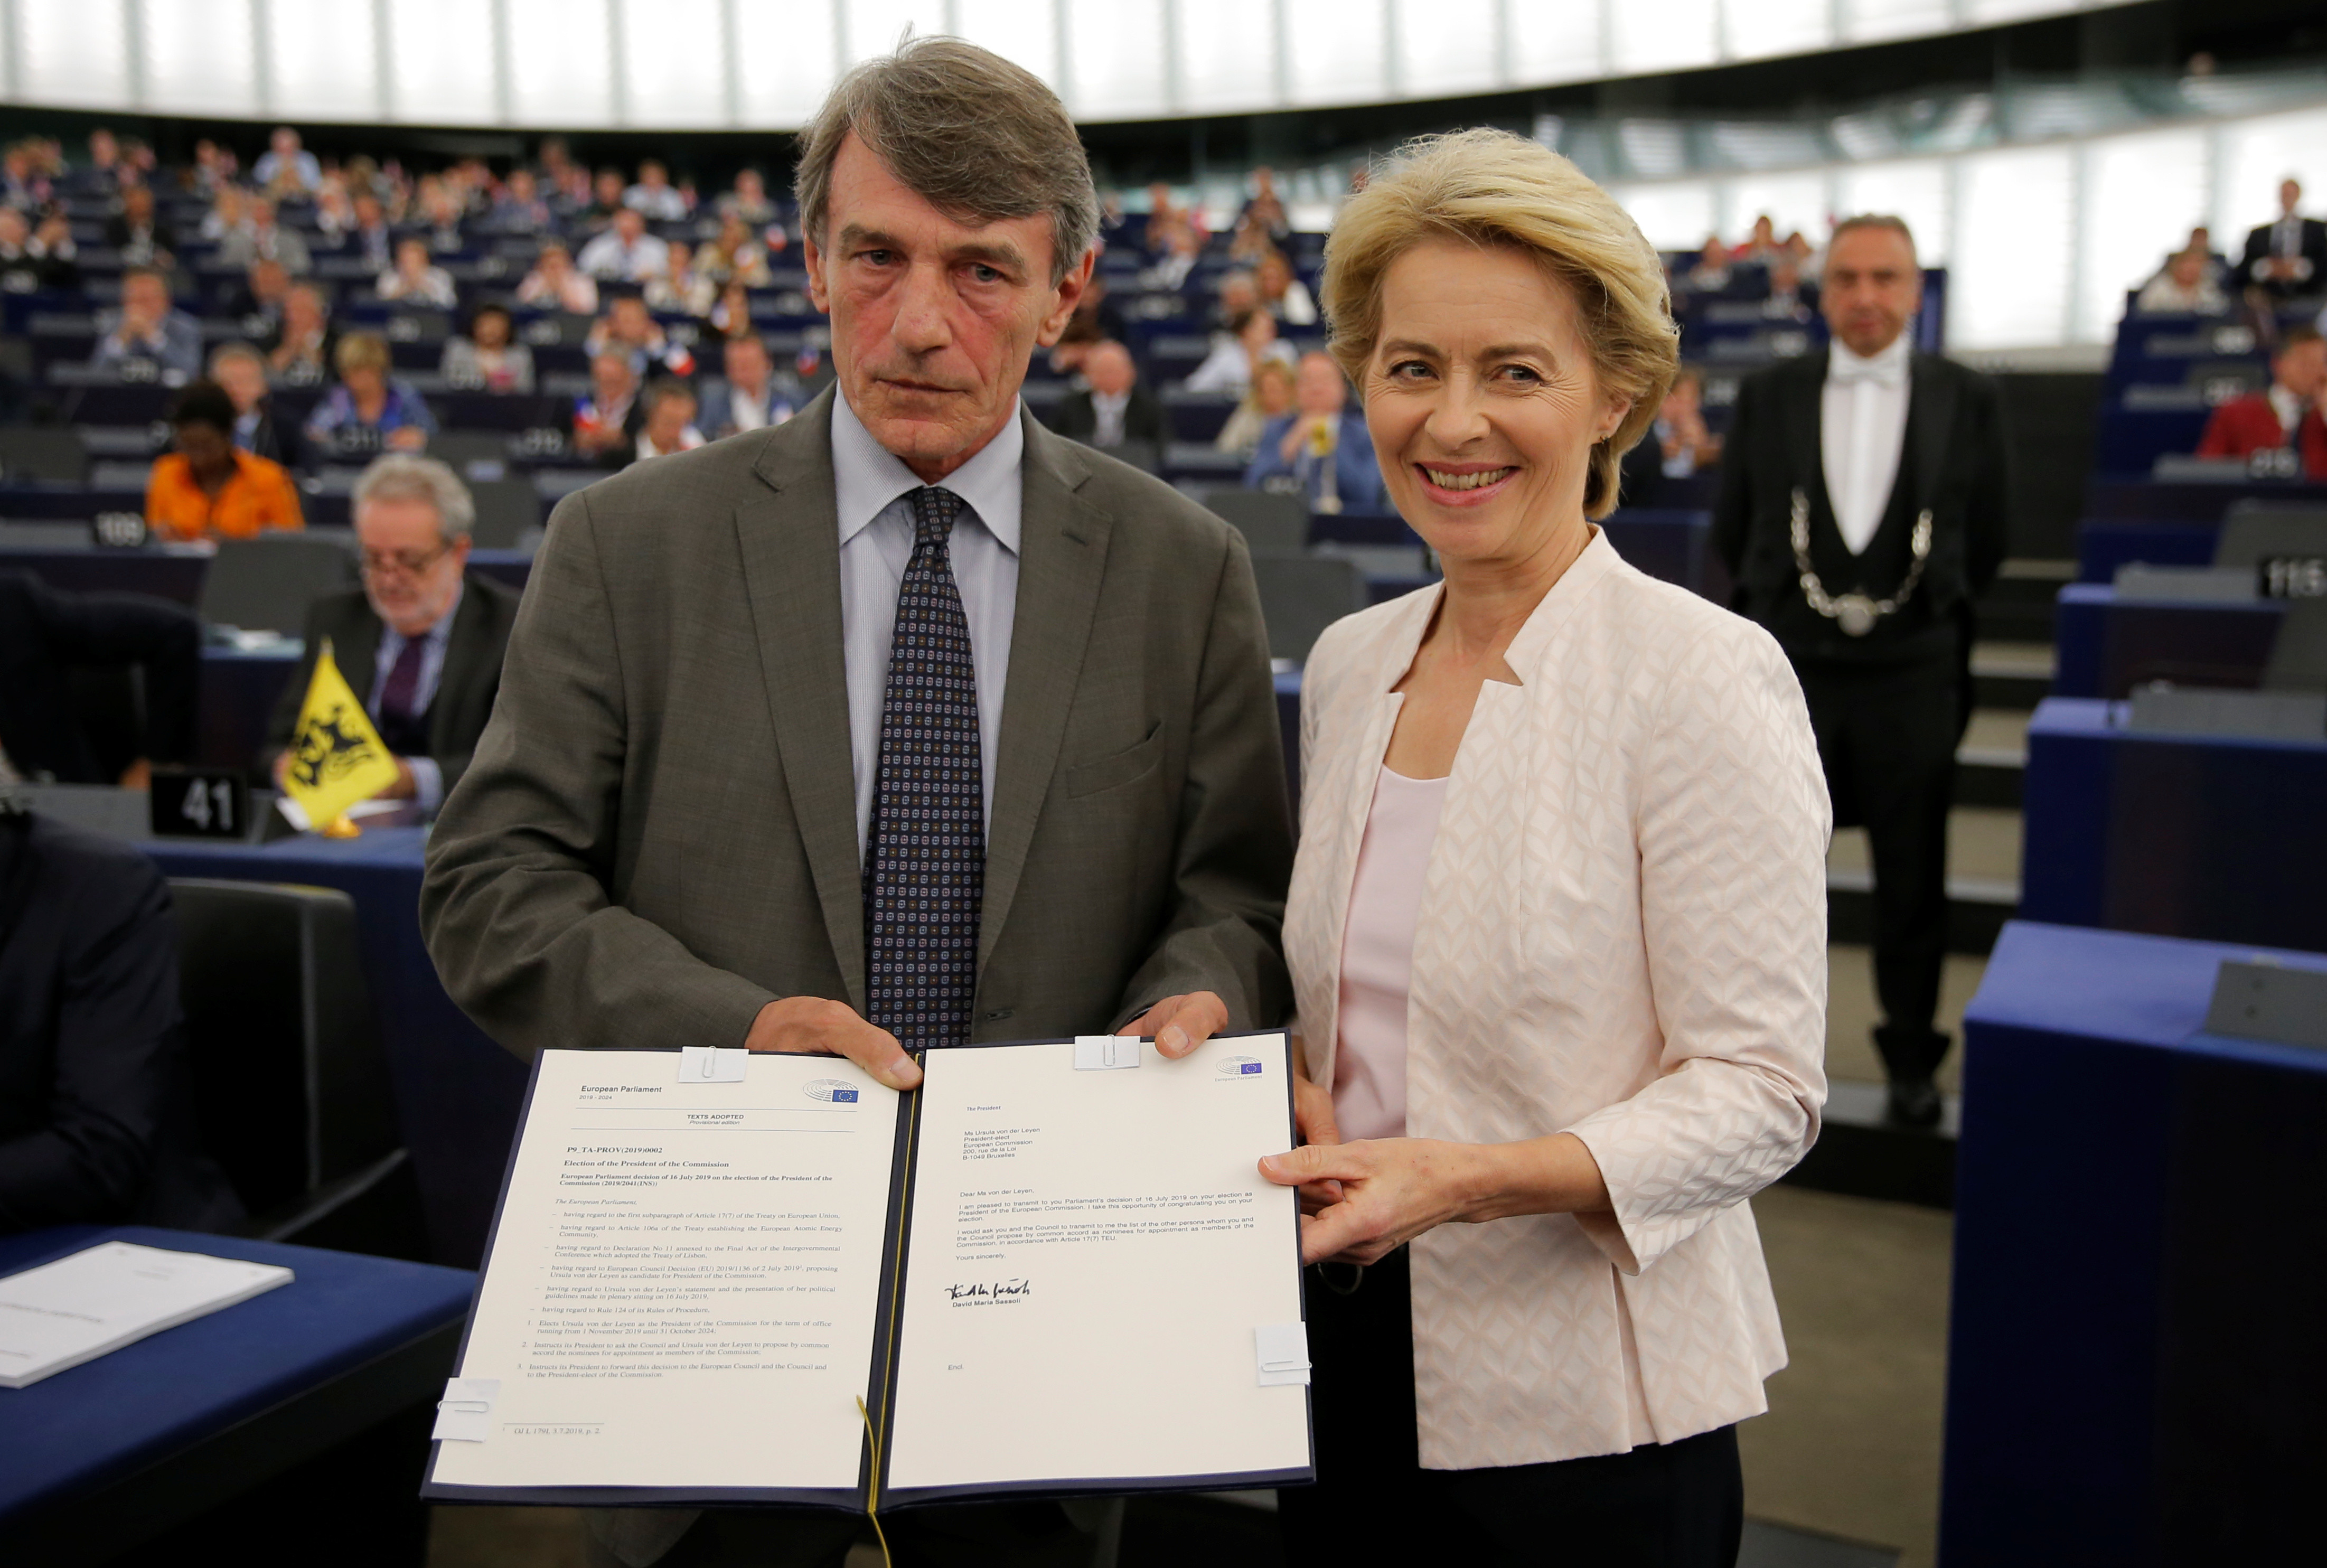 Ursula von der Leyen is congratulated by European Parliament President David-Maria Sassoli after her election as European Commission president